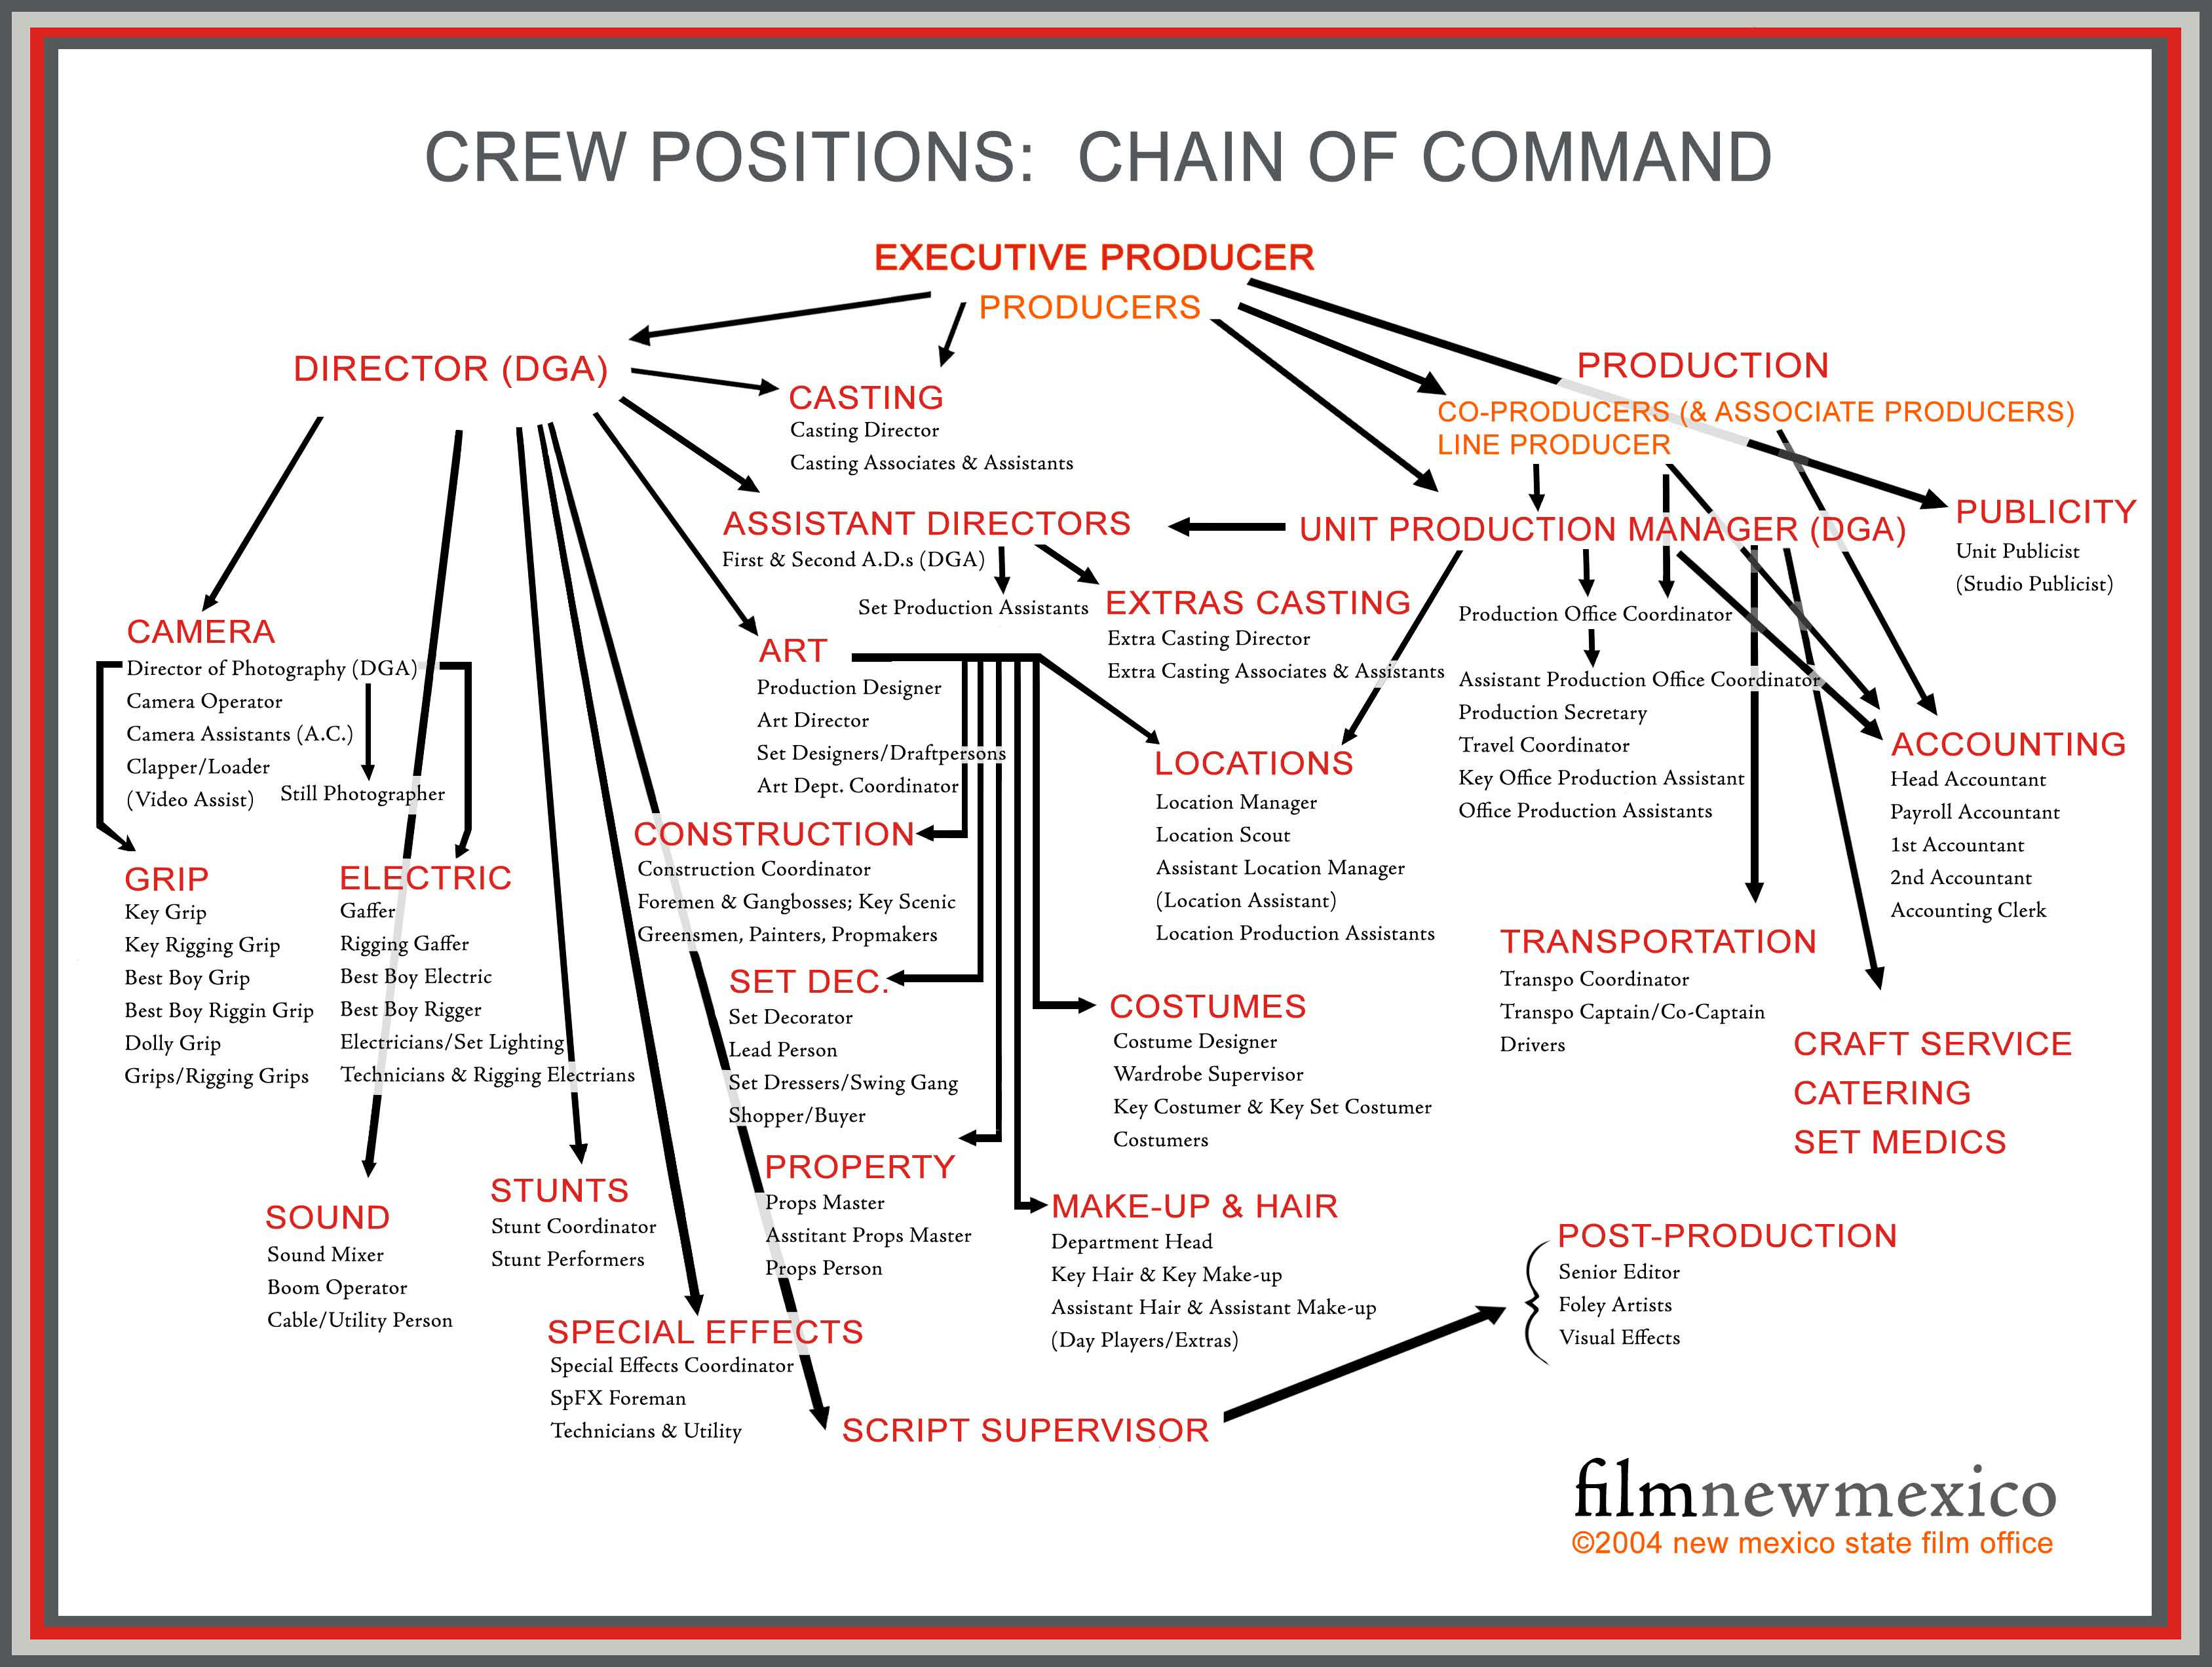 Film Set Chain of Command